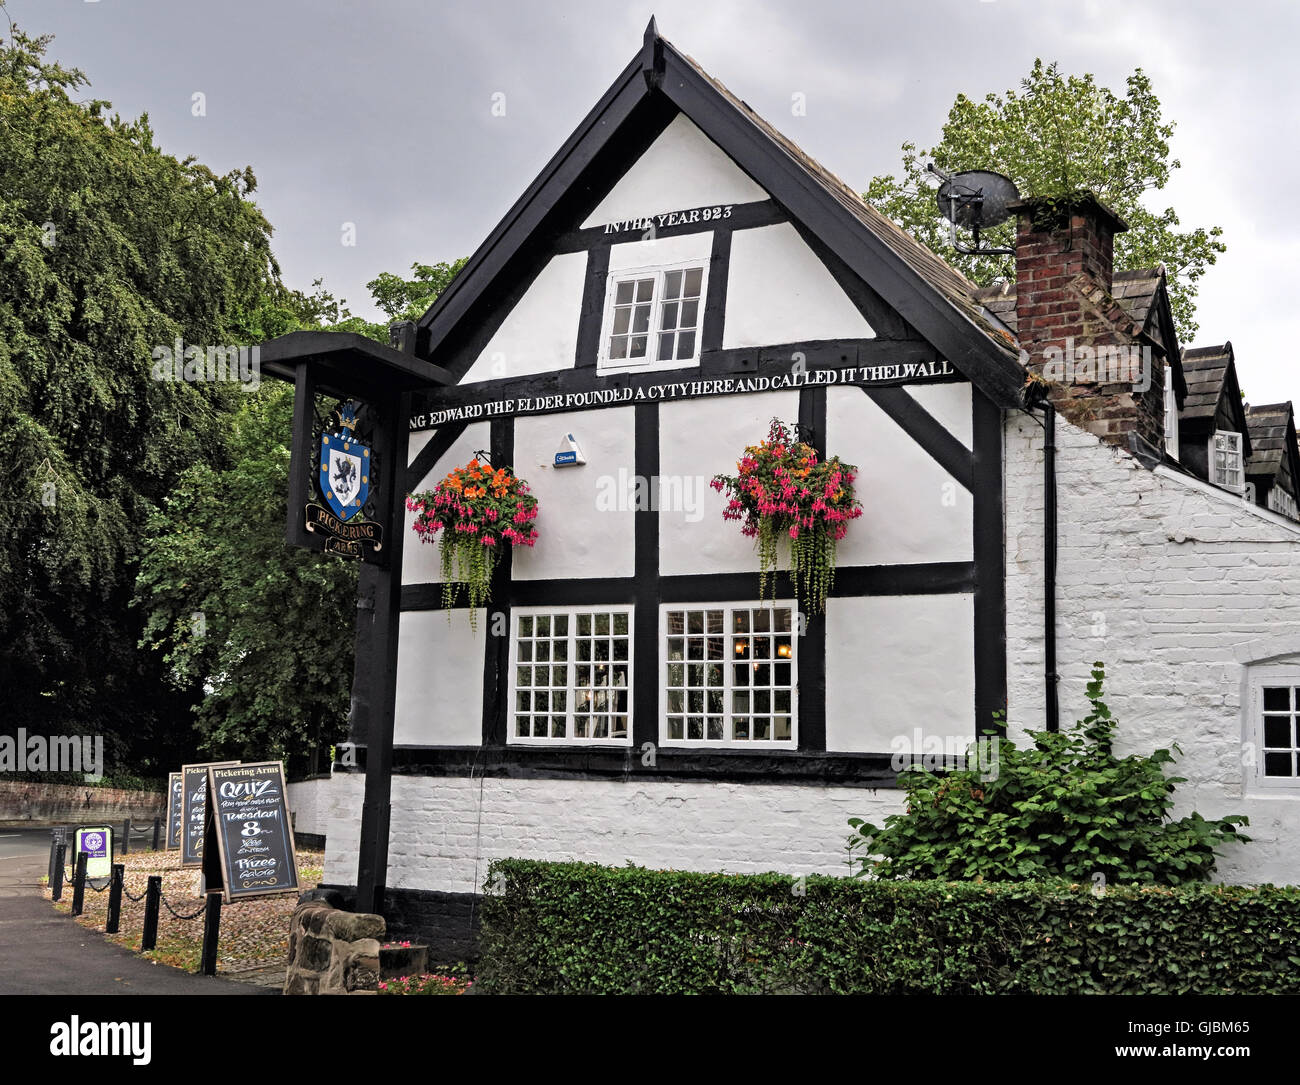 GoTonySmith,@HotpixUK,Tony,Smith,UK,GB,Great,Britain,United,Kingdom,English,British,England,problem,with,problem with,issue with,Buy Pictures of,Buy Images Of,Images of,Stock Images,Tony Smith,United Kingdom,Great Britain,British Isles,Thelwall,North West England,timber frame,timber frames,In the year 920,King Edward the Elder,founded a city here,In the year 920 King Edward the Elder founded a,Thelewell,Thelwal,18th Century Inn,Inn,Real Ale,CAMRA,16th century